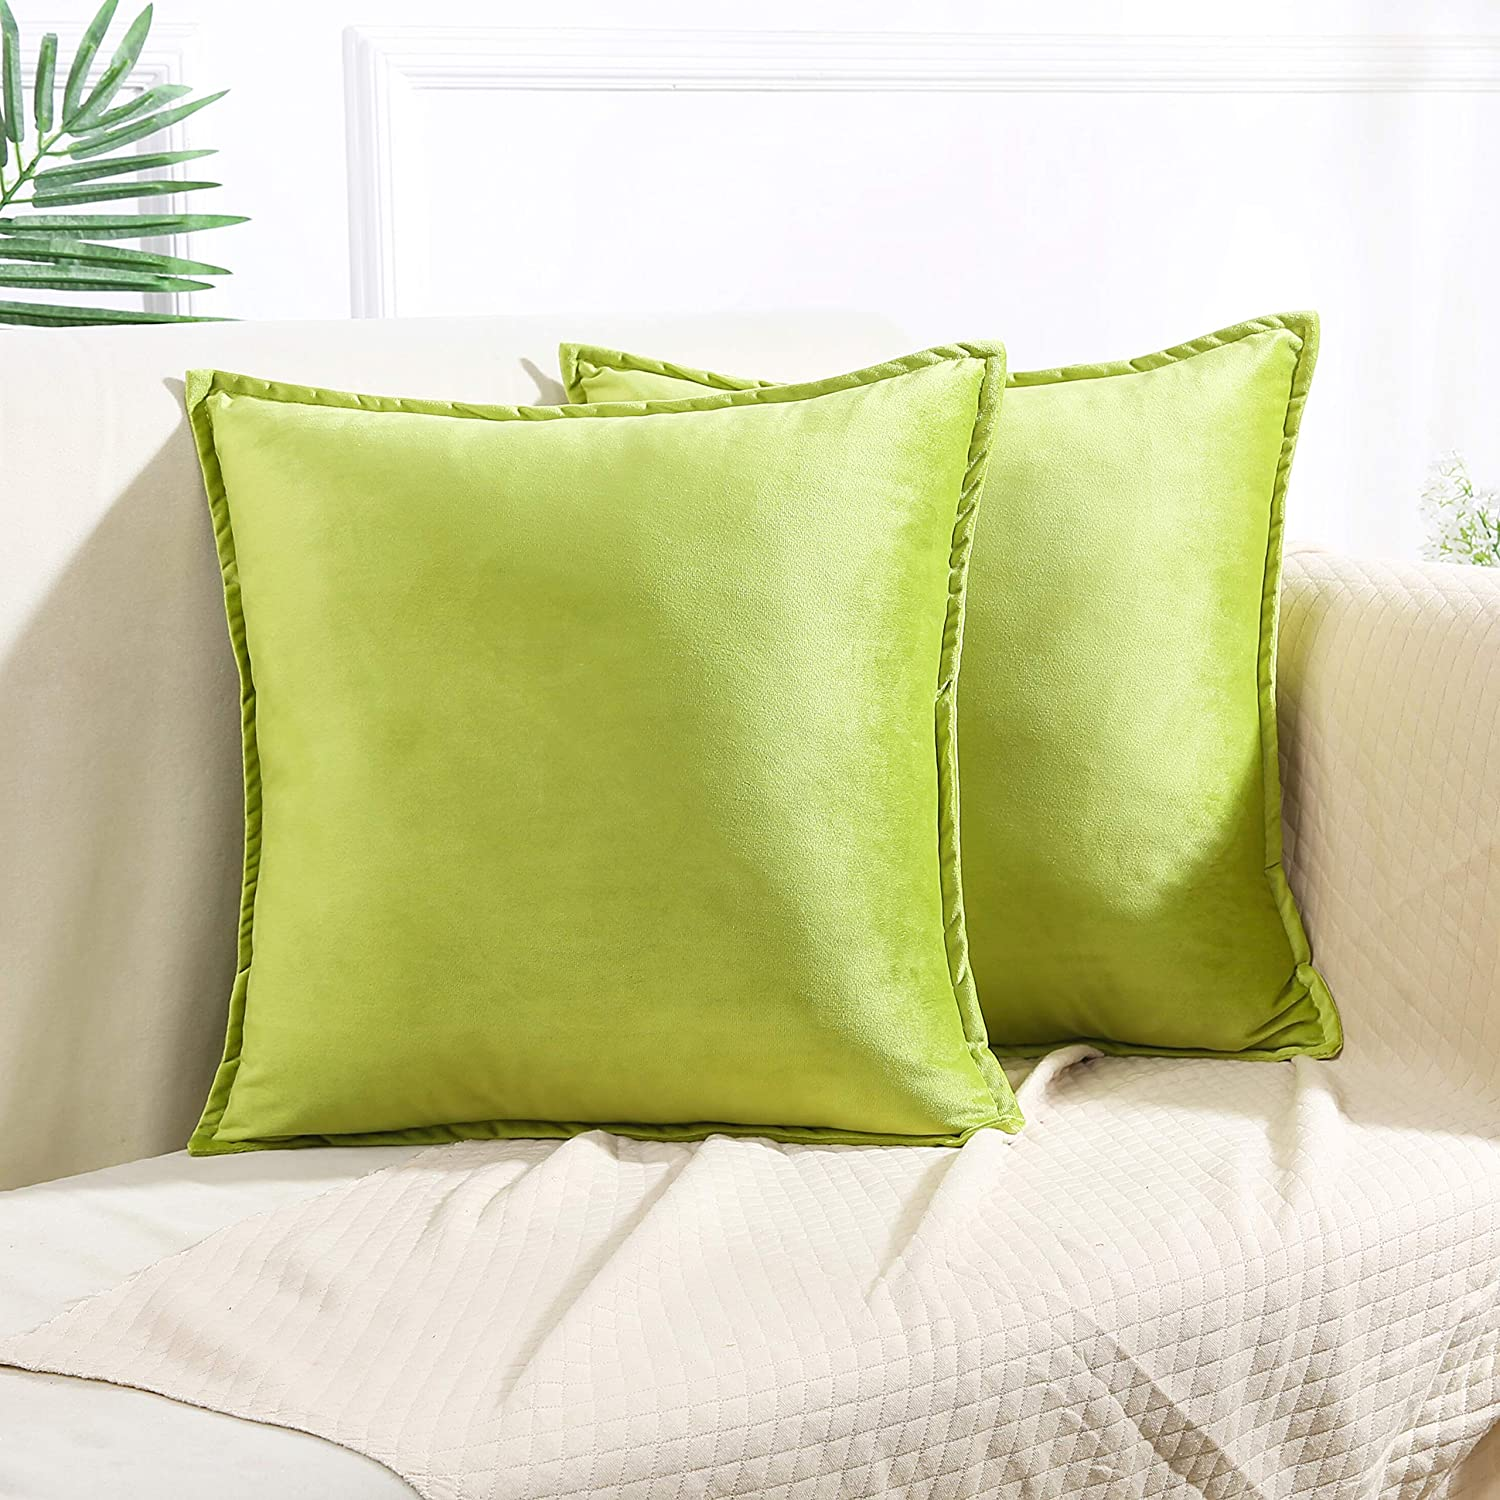 Colorxy Velvet Decorative Throw Pillow Covers, 18x18 Inch, Set of 2, Apple Green